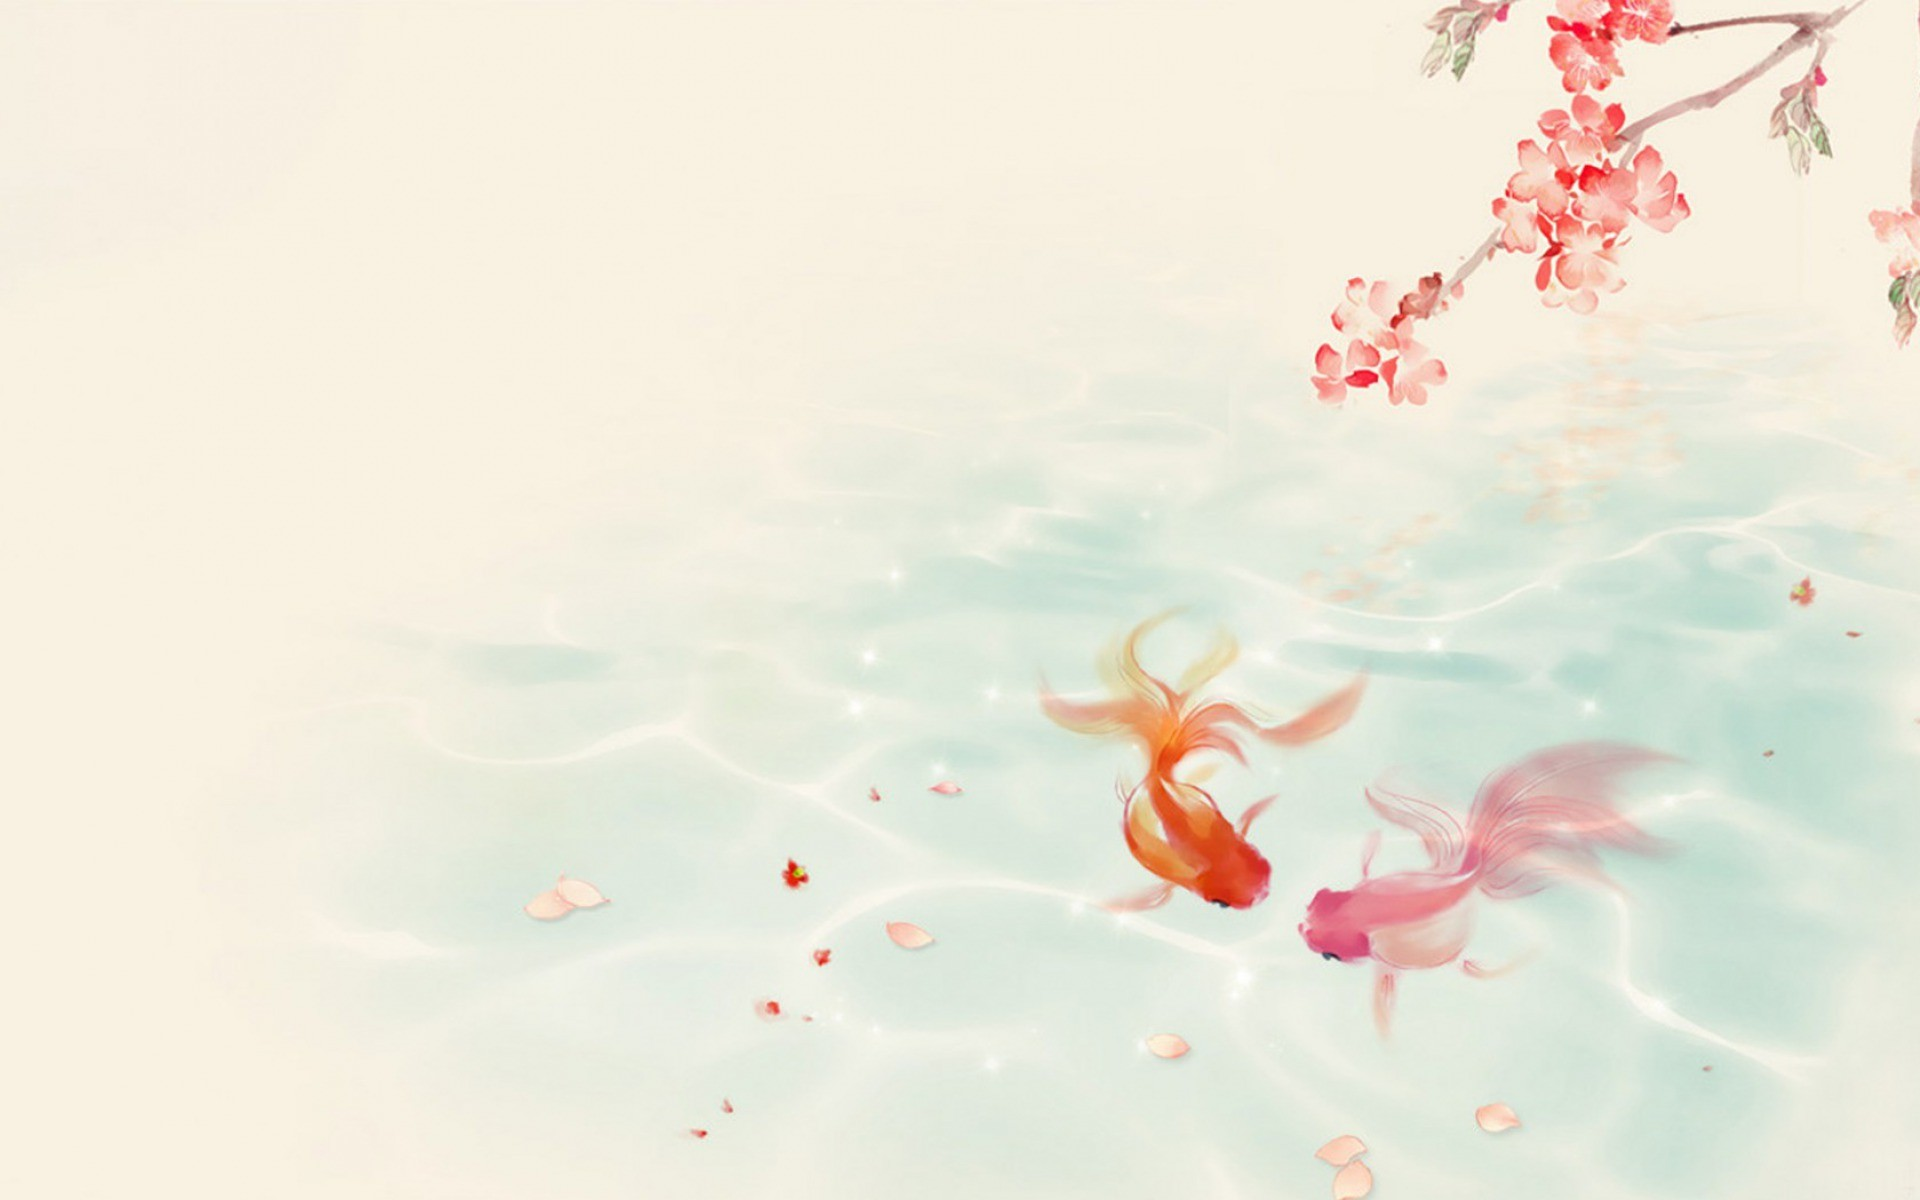 Cat Girl Anime Live Wallpaper Hd Koi Fish Wallpaper 54 Images